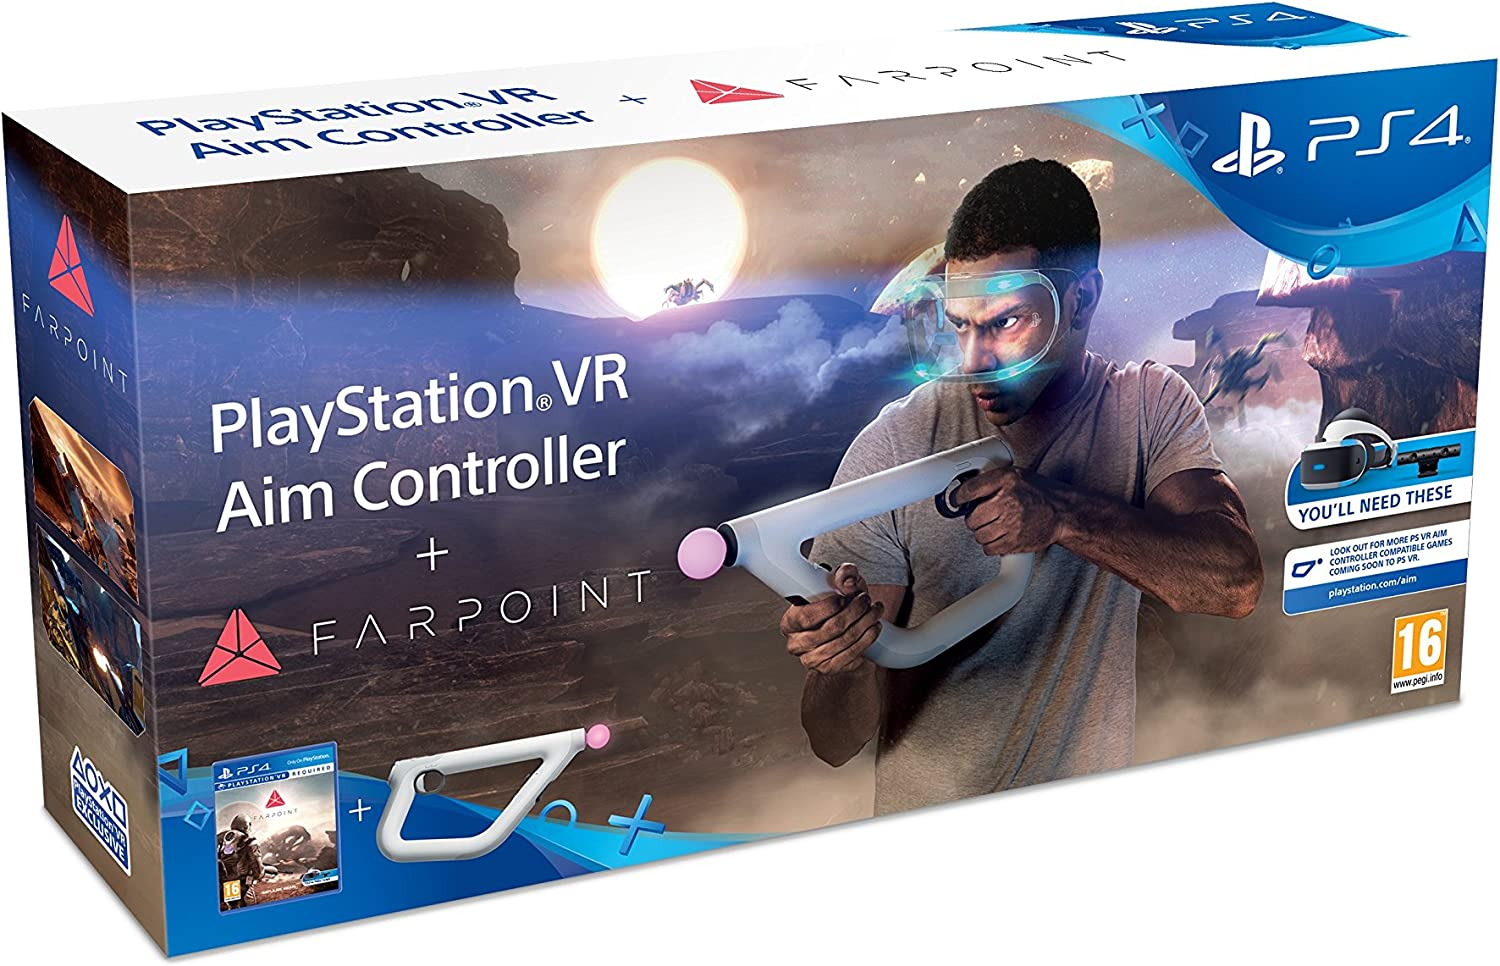 Play station VR aim controler + Farpoint: Amazon.es: Electrónica